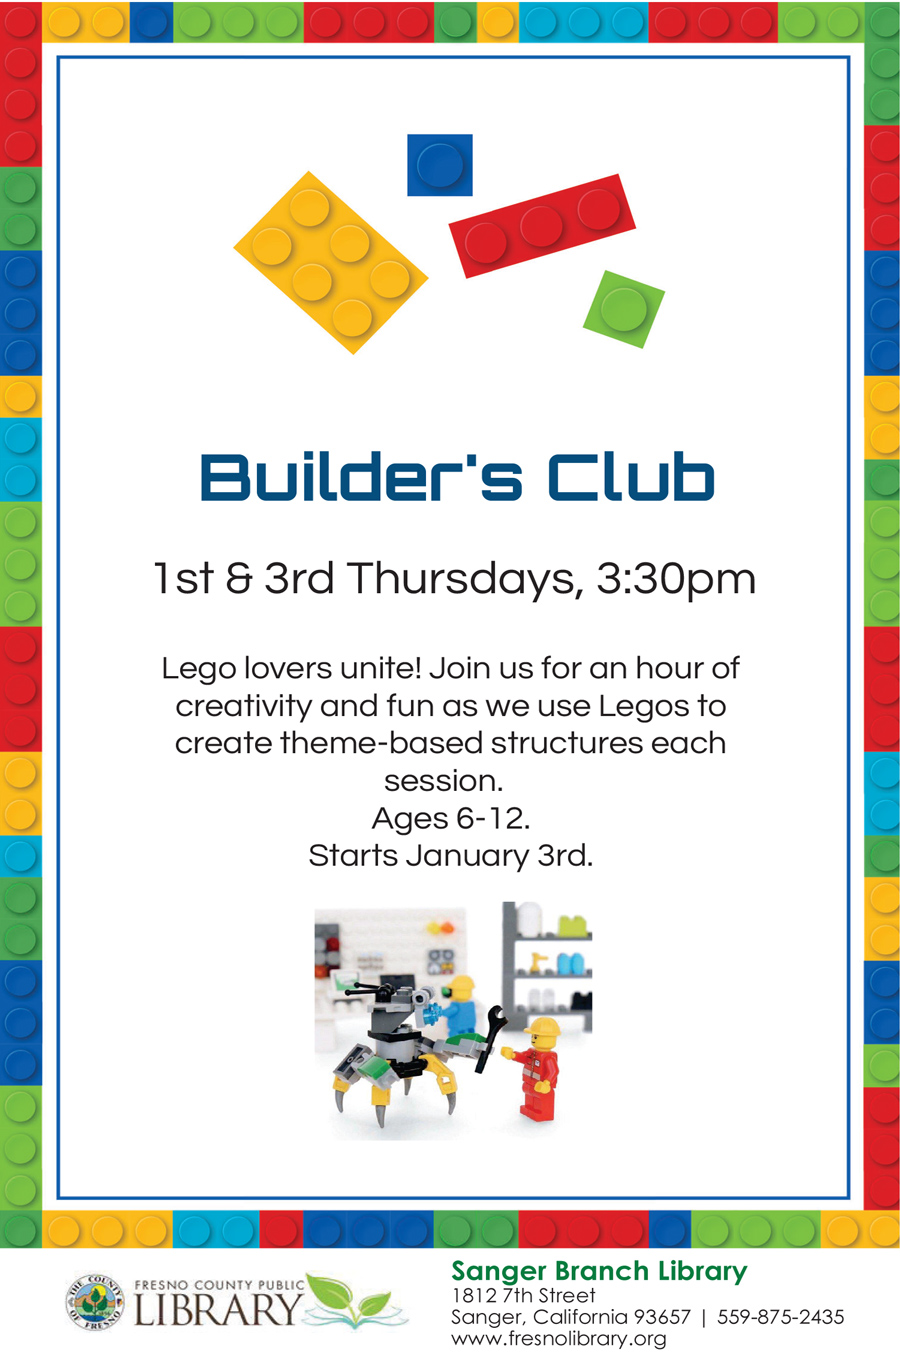 builders-club-sanger-spring-2019